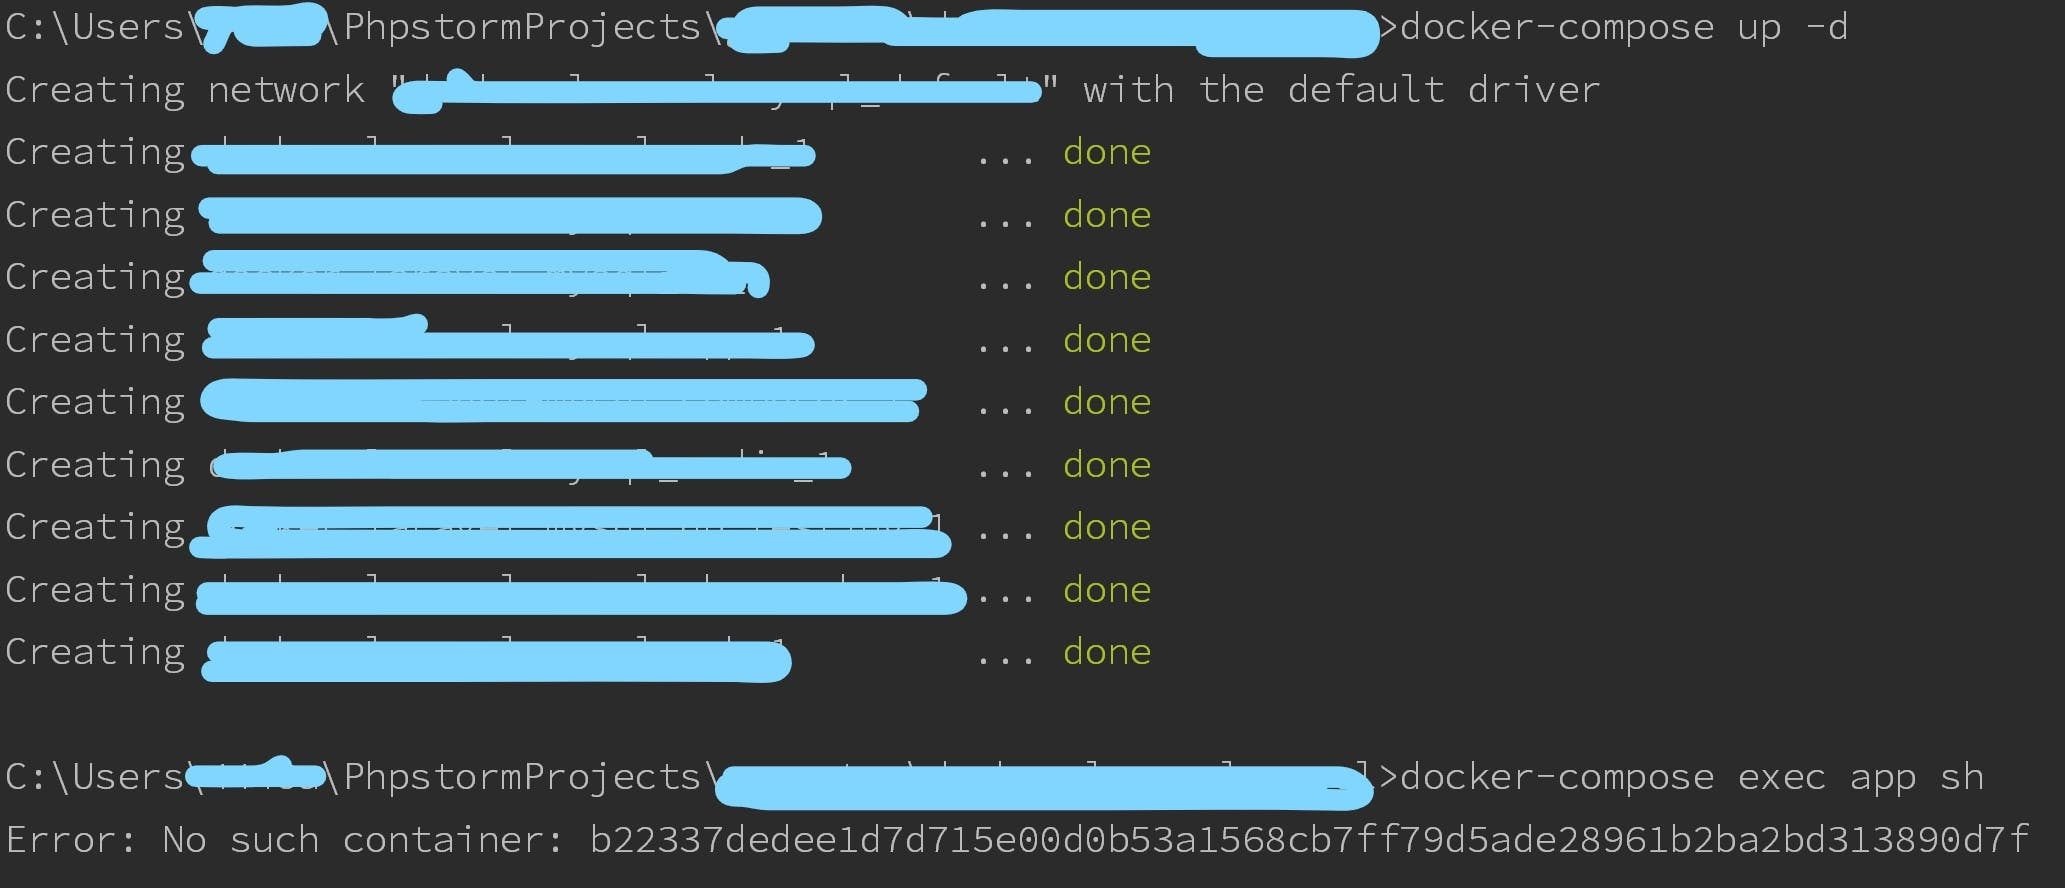 dockercontext-wslcontainer_LI.jpg